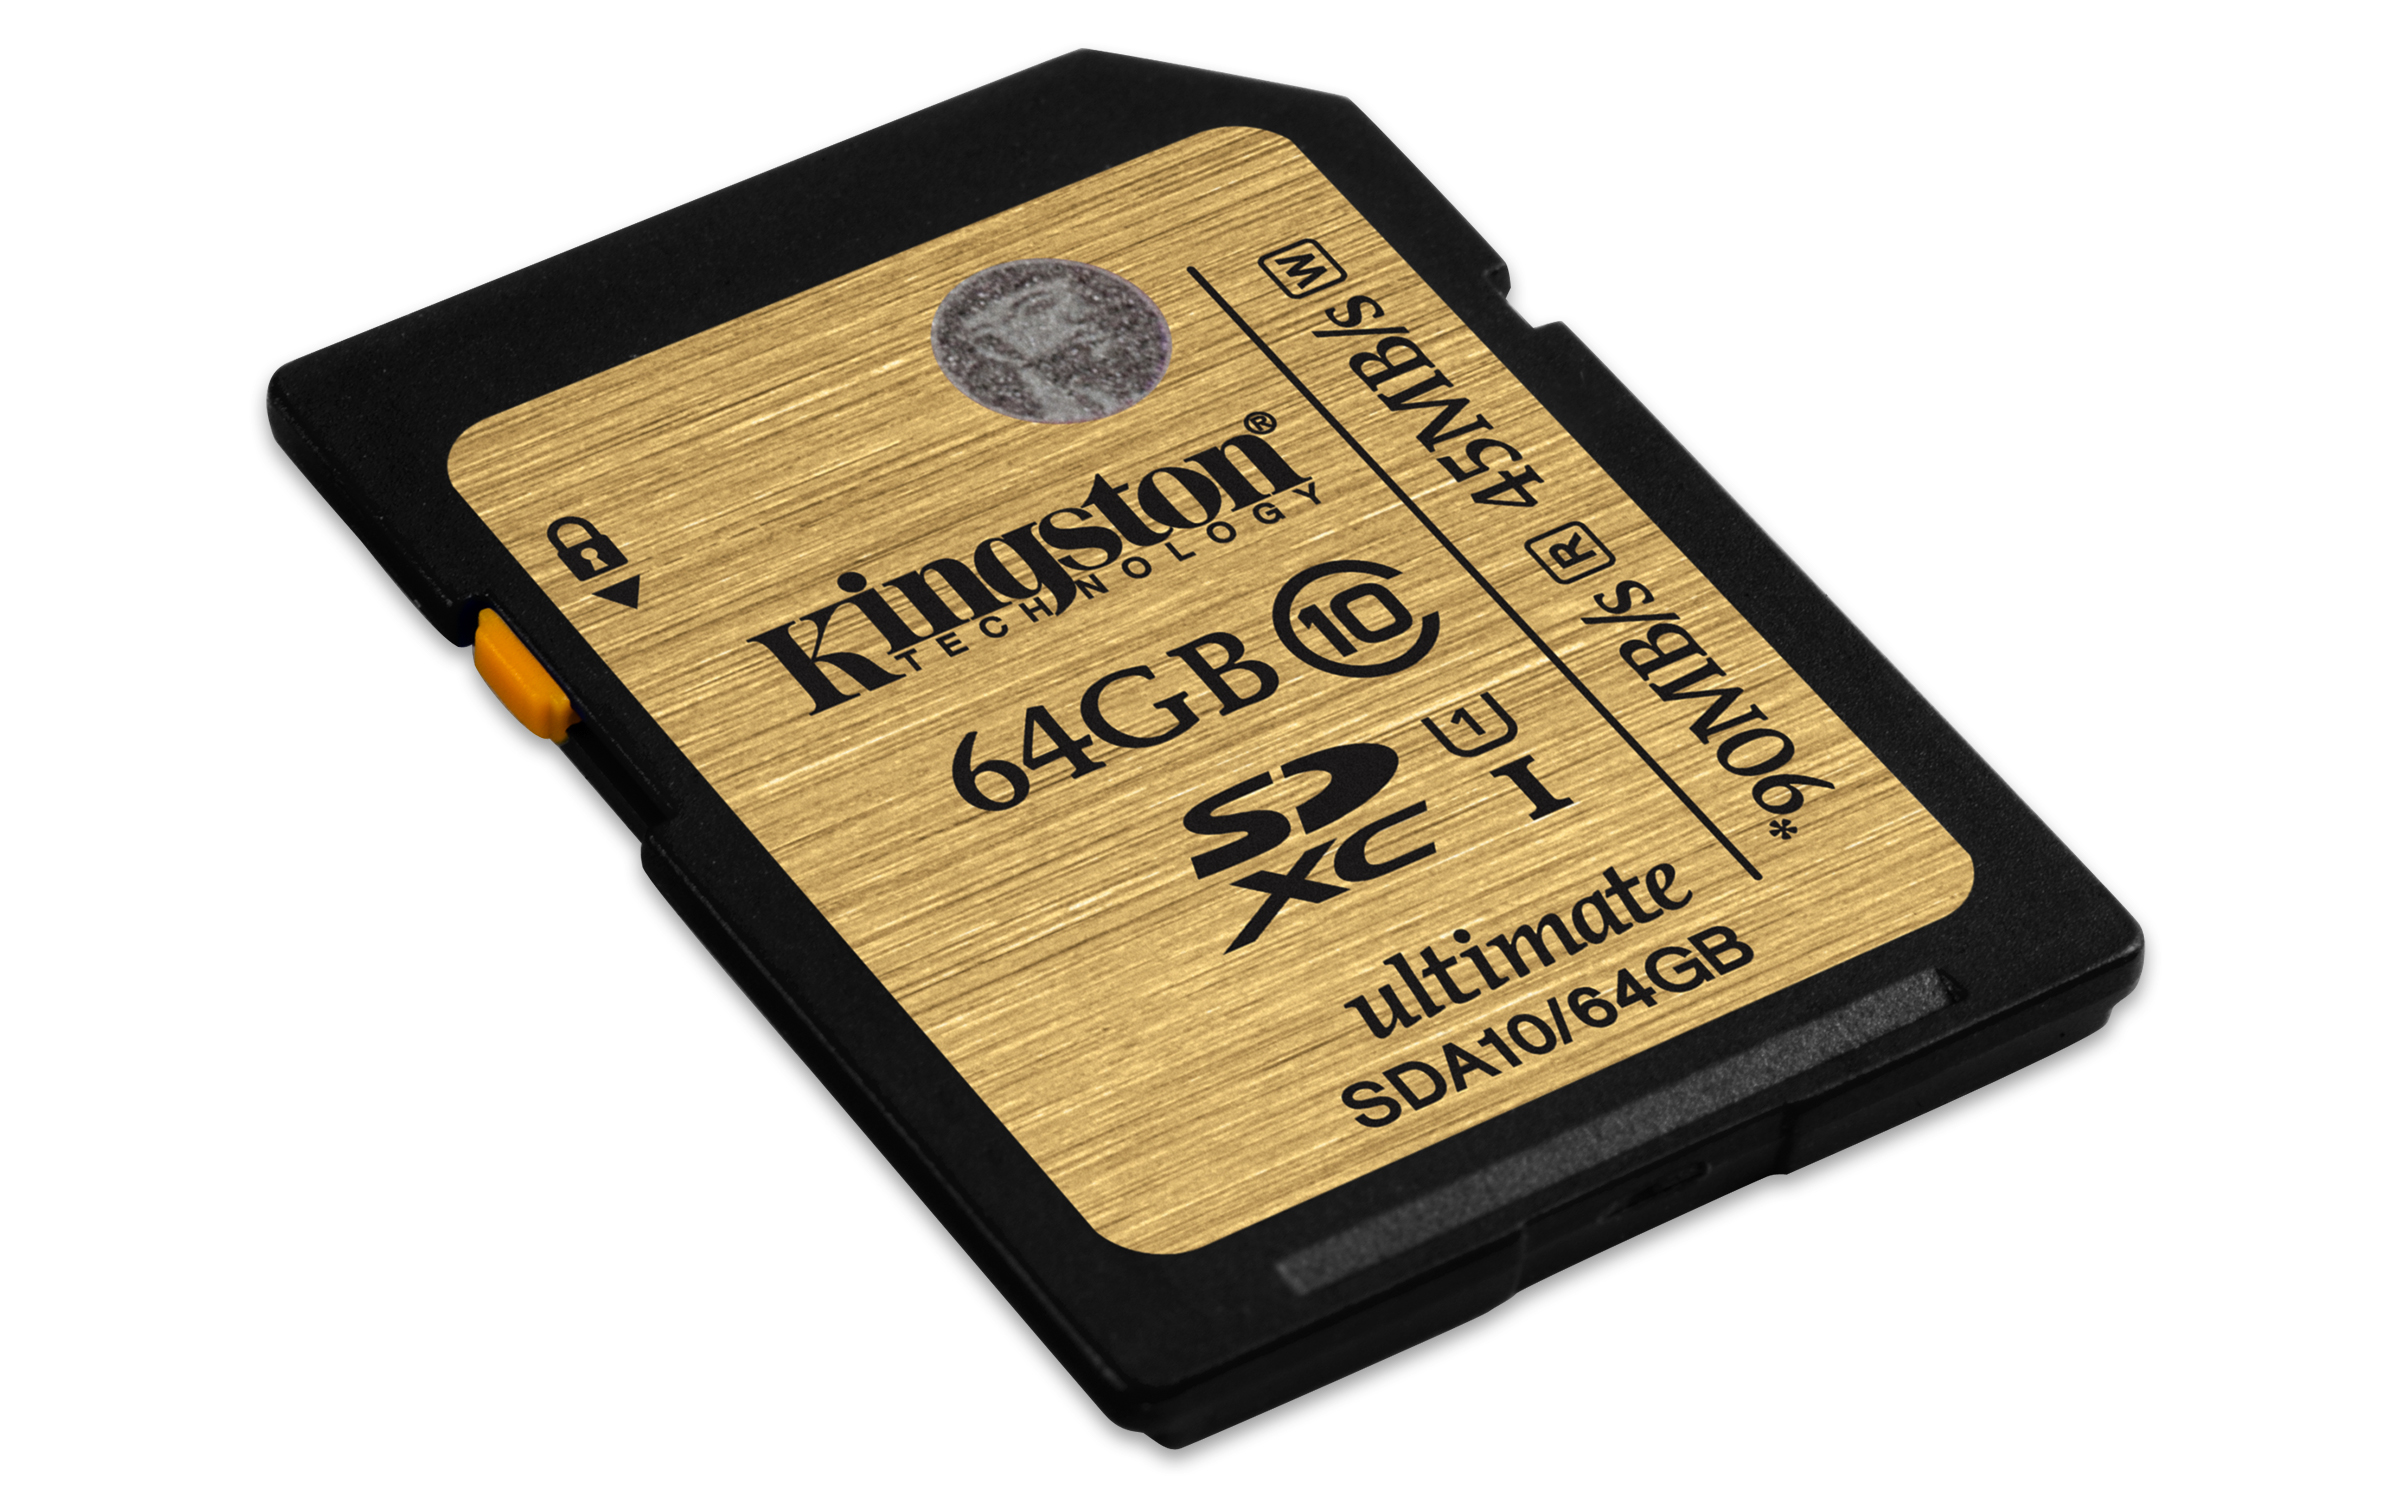 KINGSTON 64GB SDXC Class 10 UHS-I 90MB/s R, 45MB/s W Flash Card